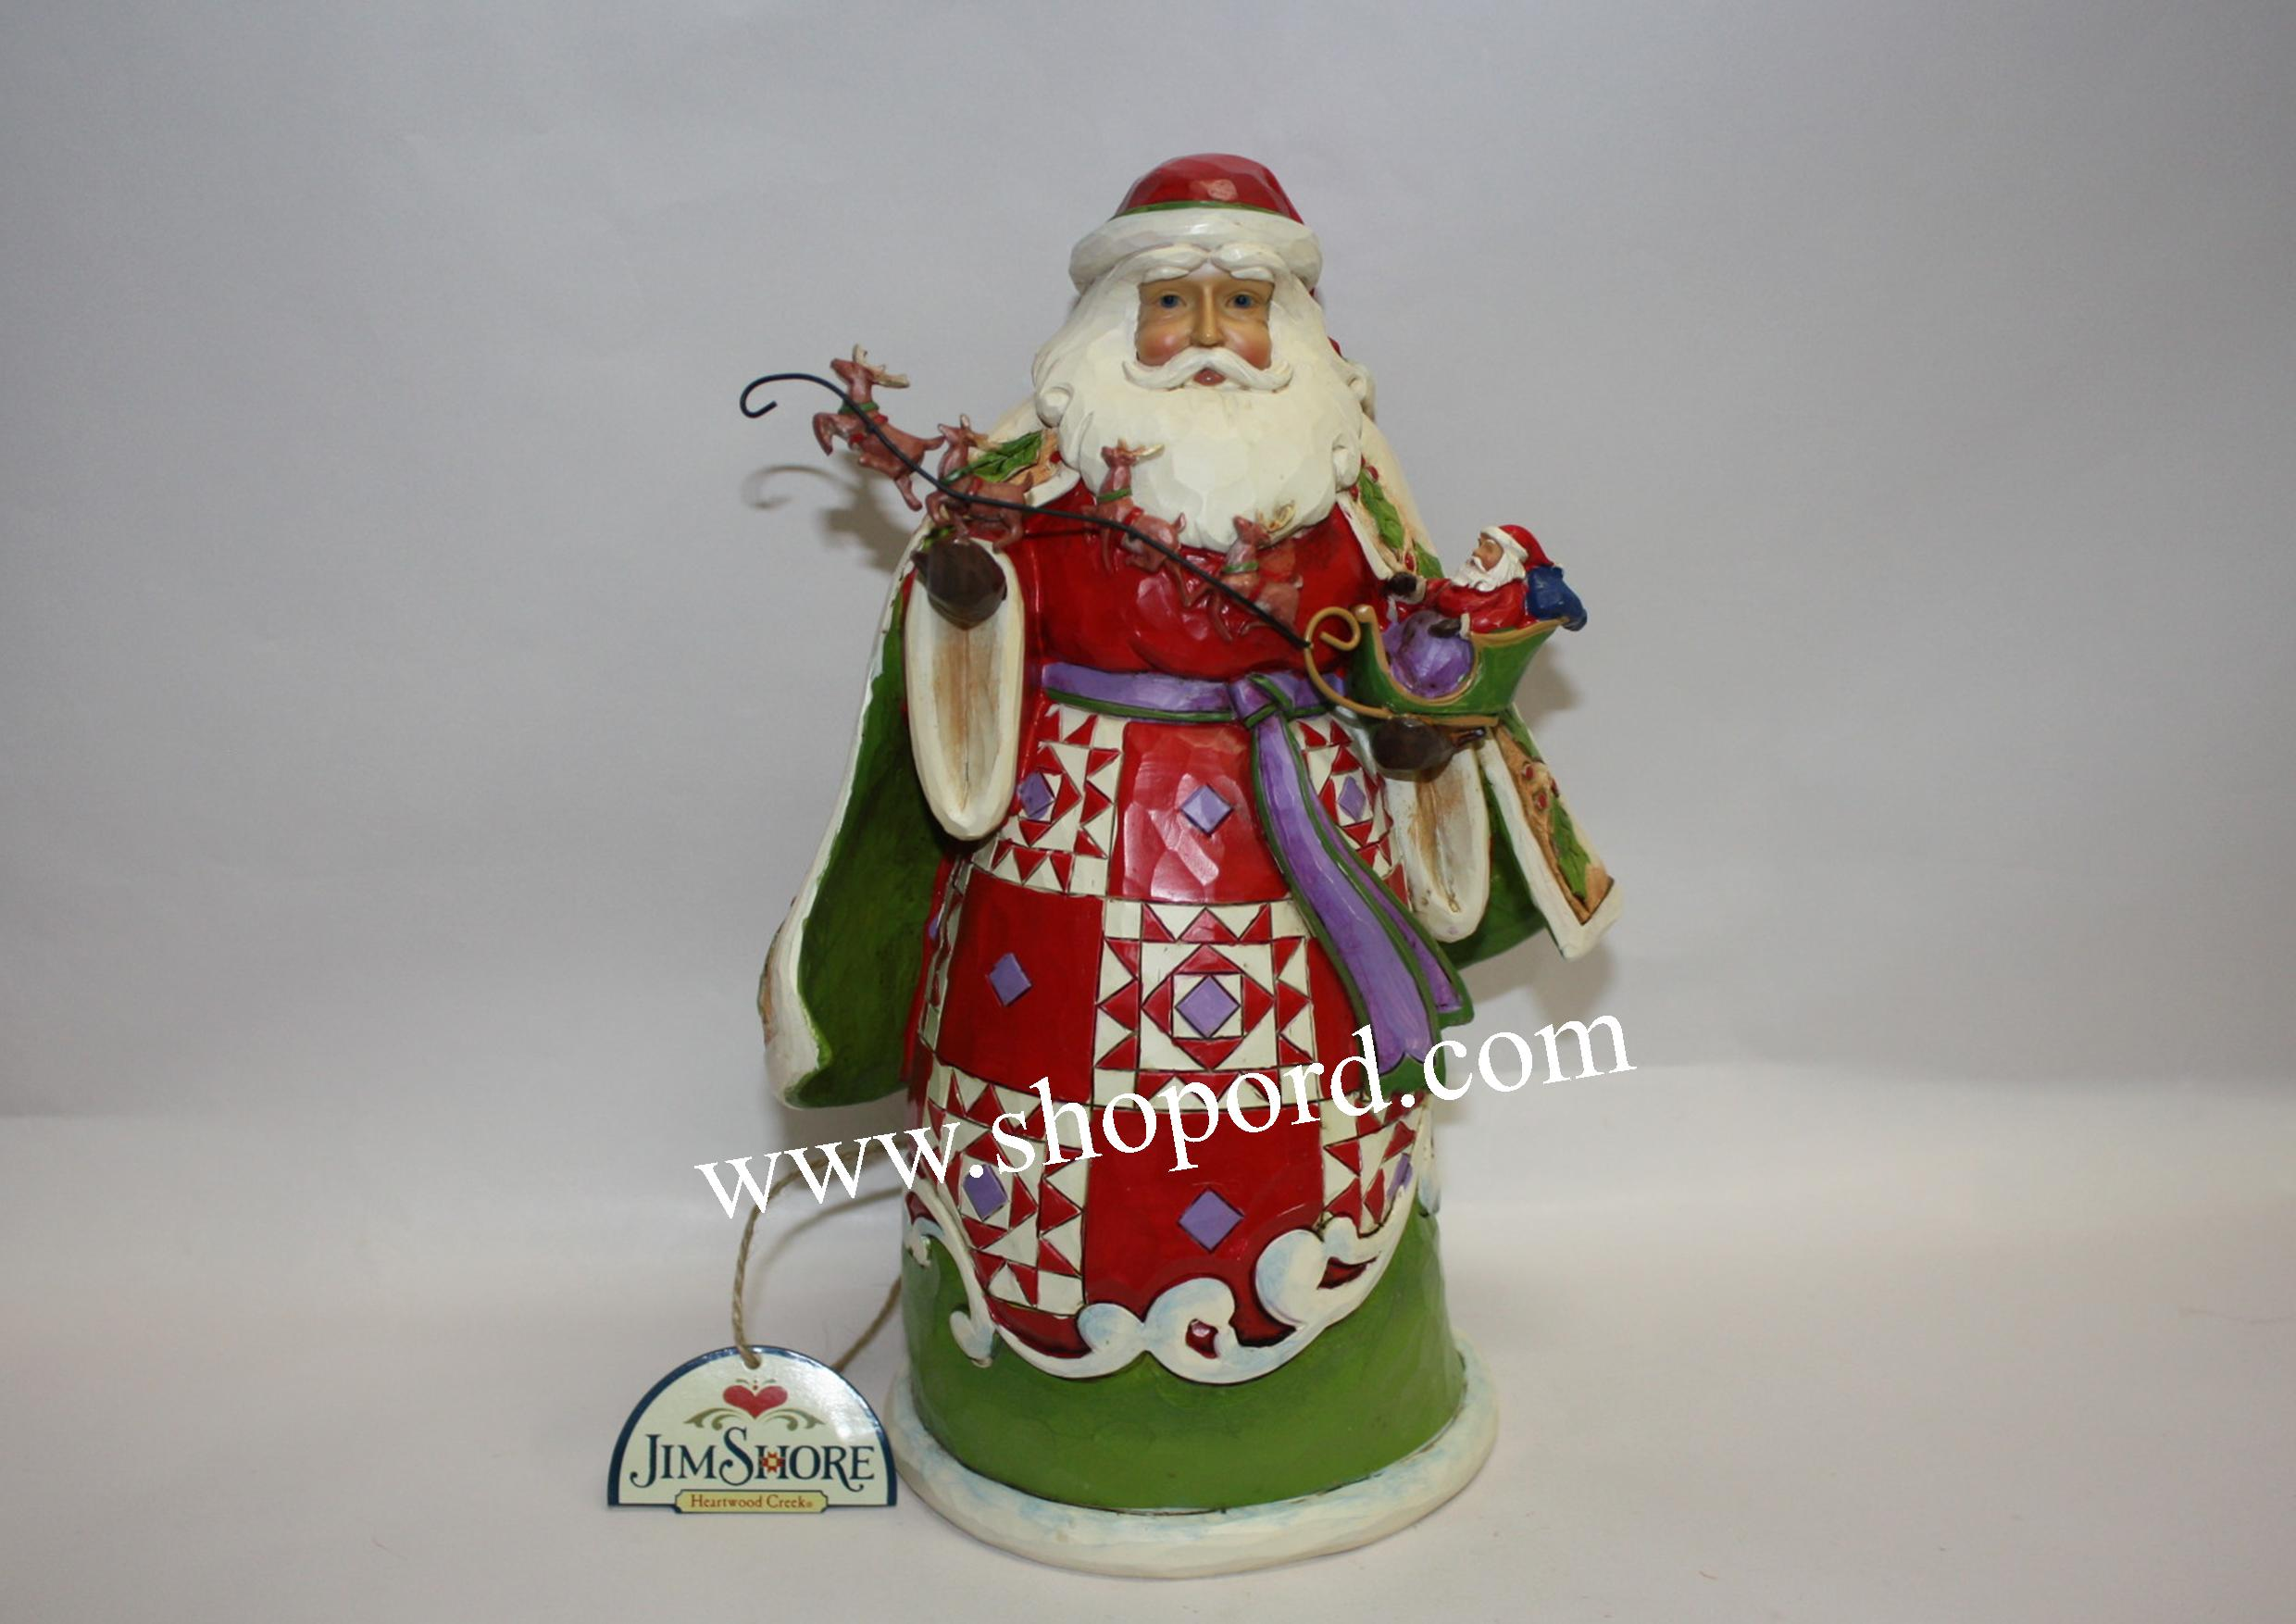 Santa sleigh ornament - Jim Shore Christmas Miracles Are In Your Grasp Santa Holding Sleigh Figurine 4034358